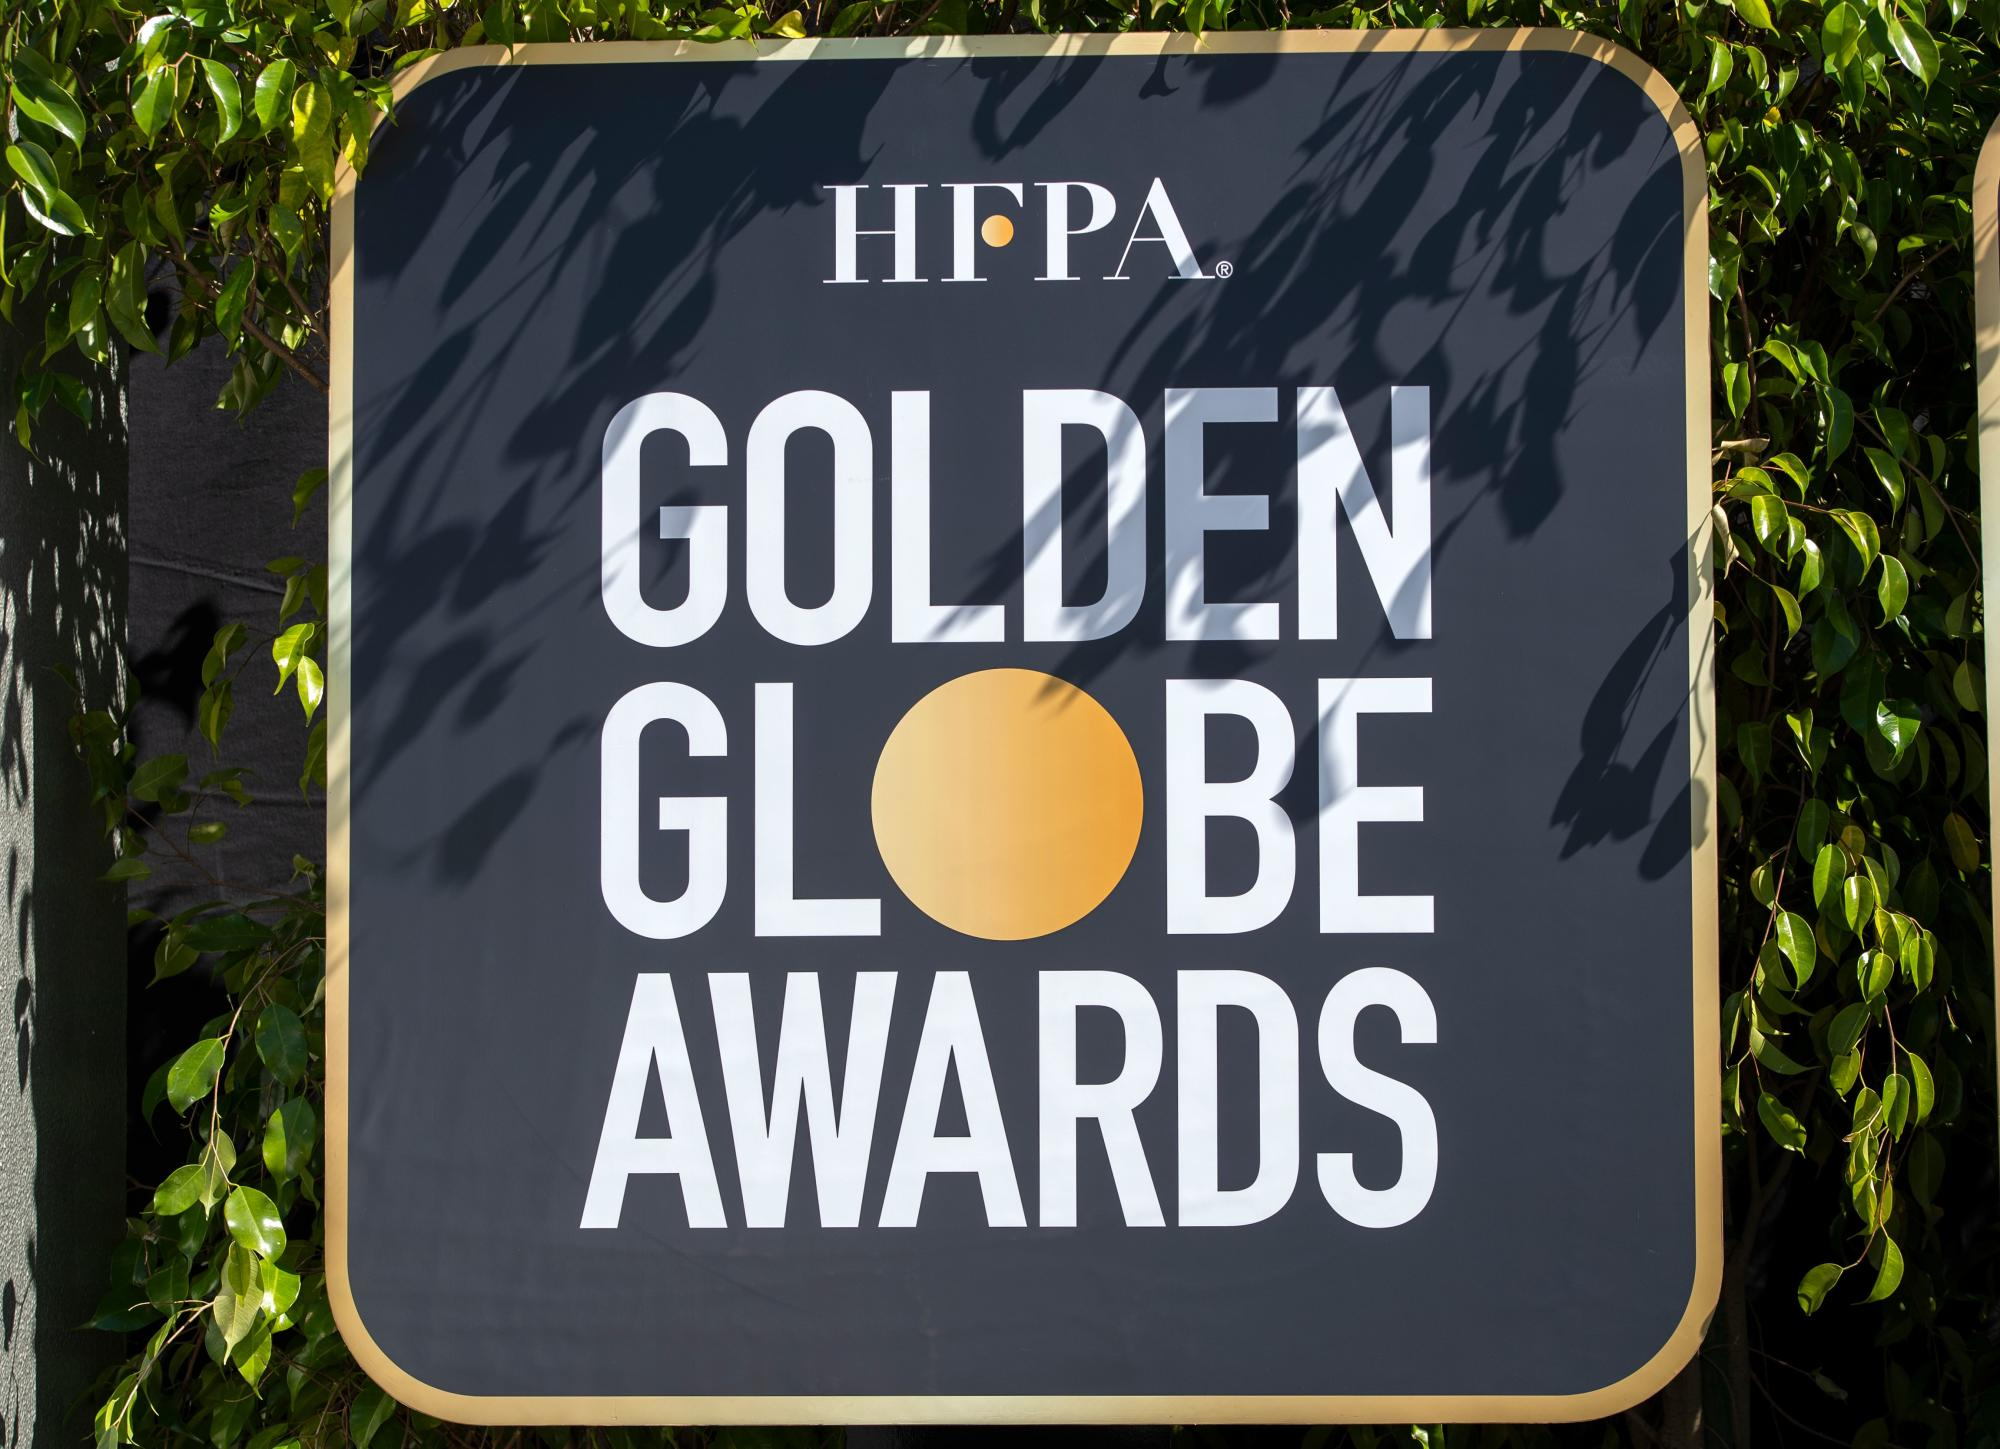 Here's what to expect from the Golden Globes as scandal, coronavirus clouds ceremony